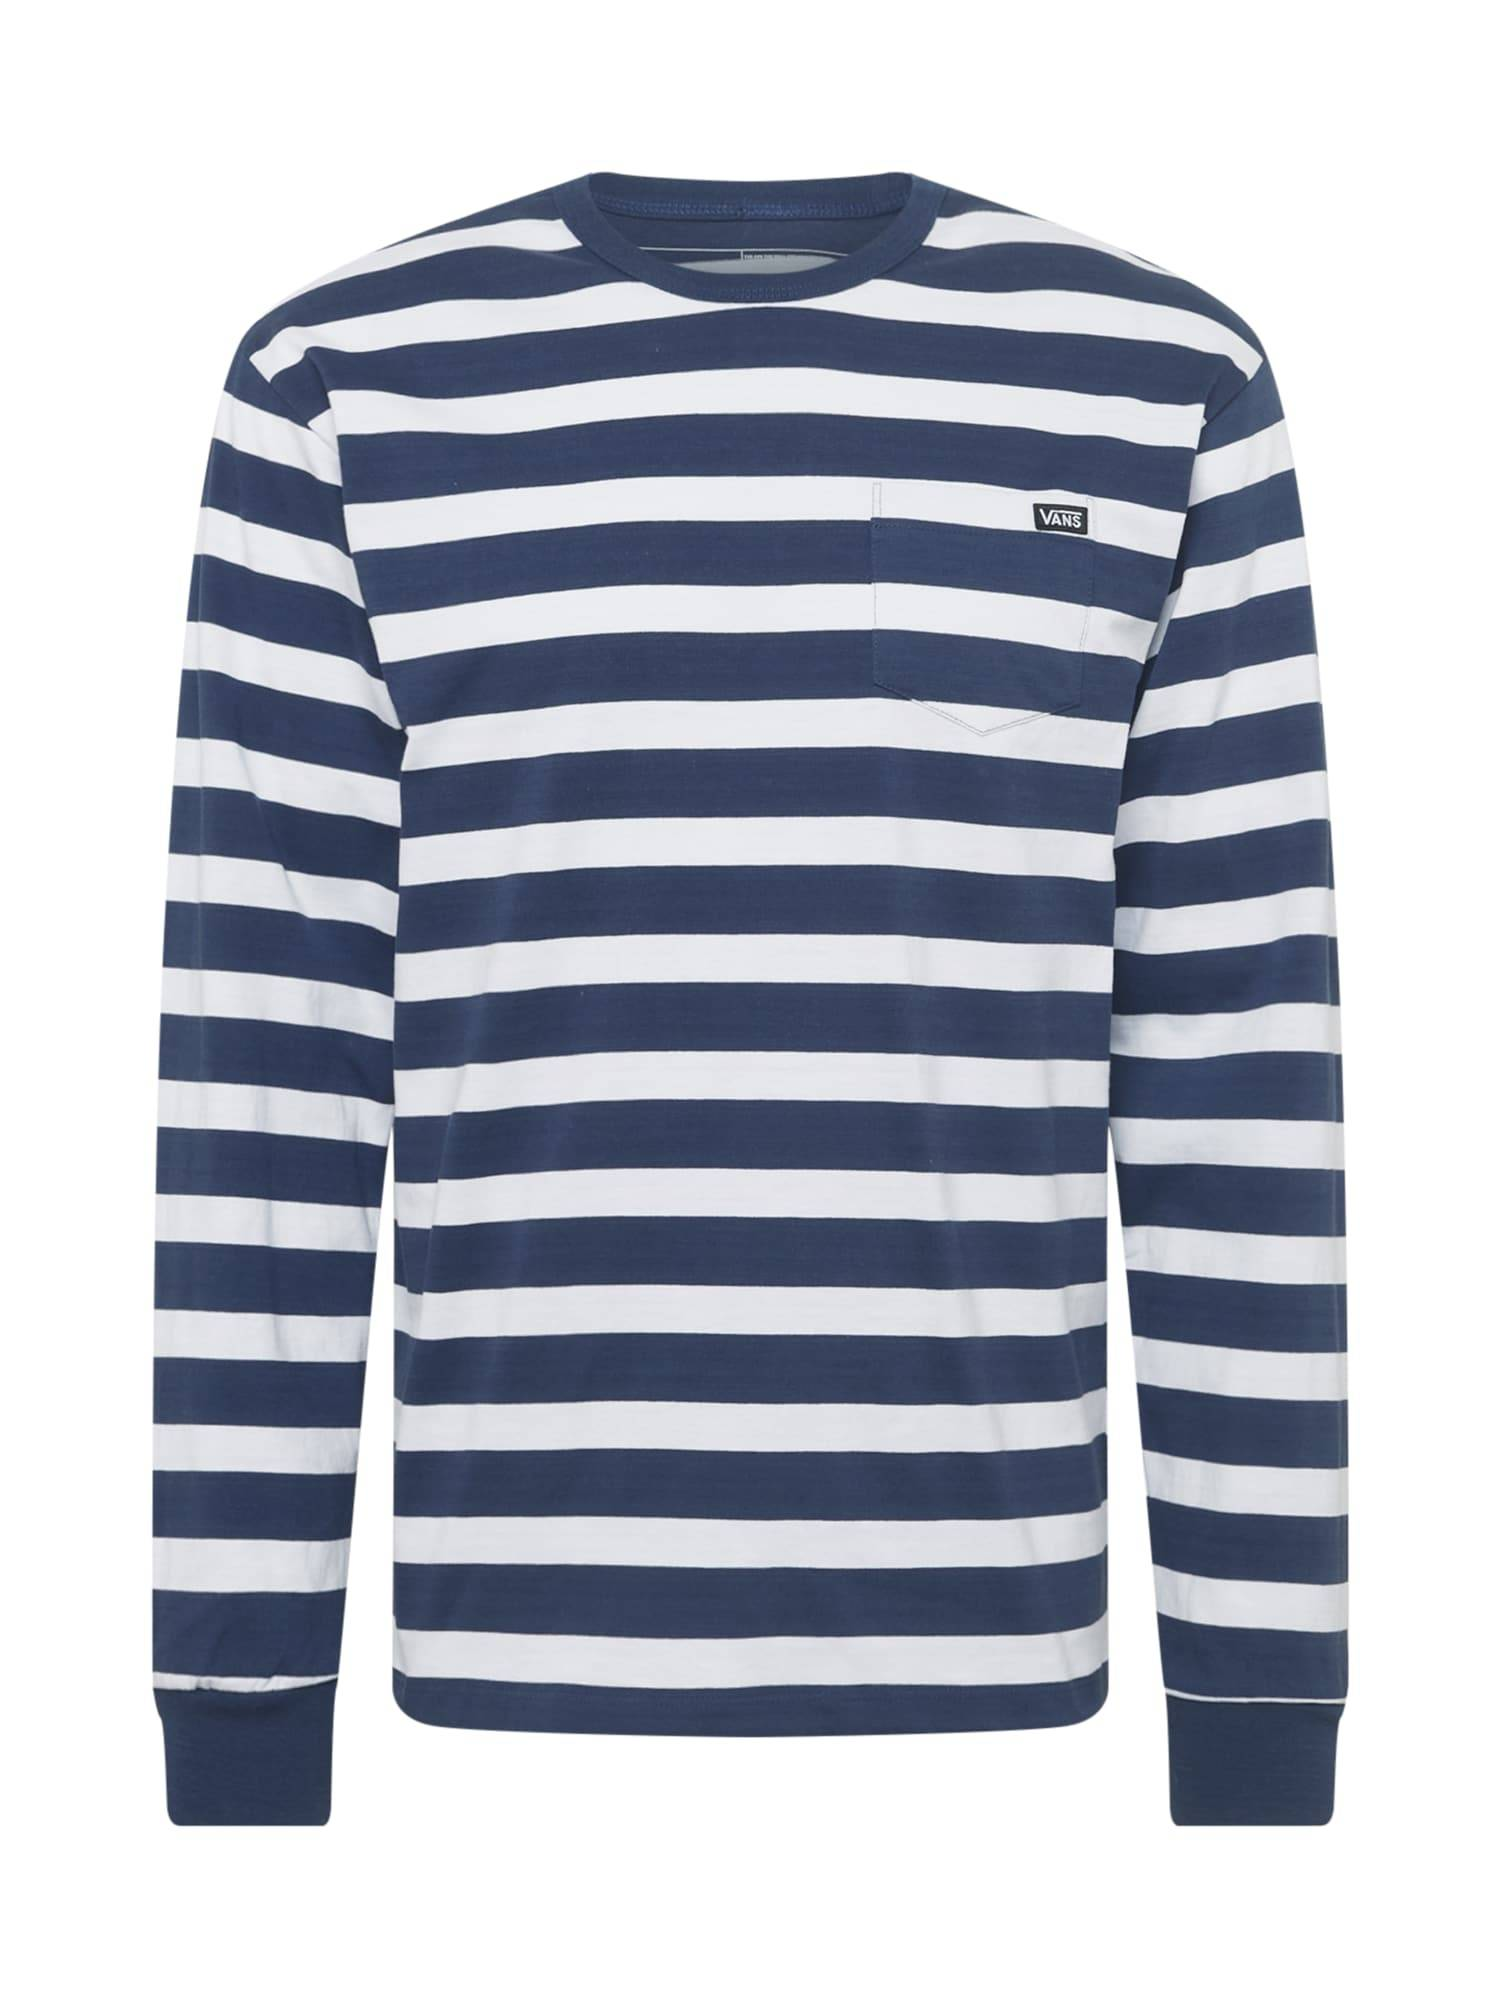 Vans T-Shirt 'Off The Wall'  - Bleu - Taille: S - male